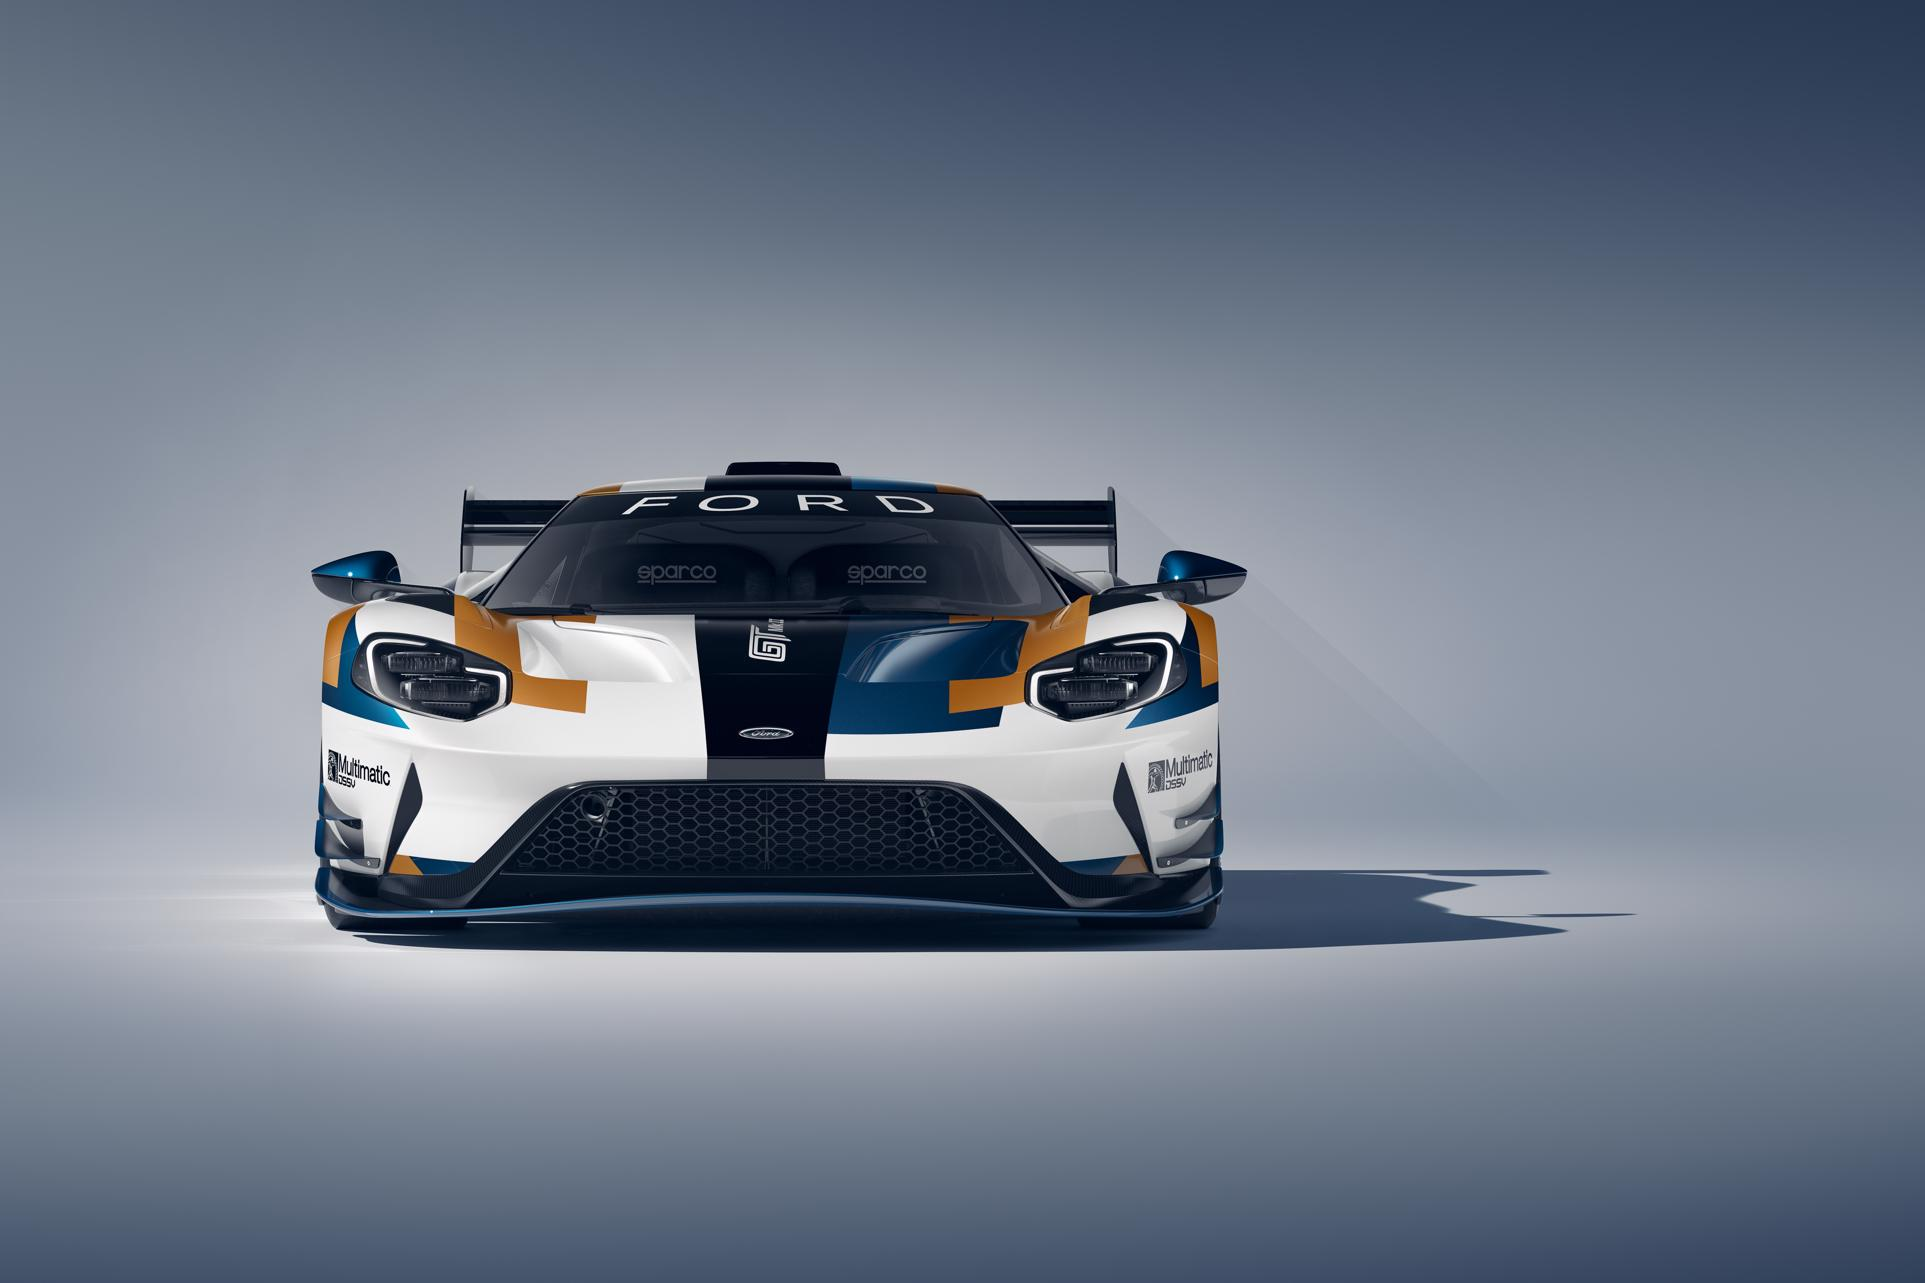 Track-only Ford GT supercar receives 700bhp and handling tweaks